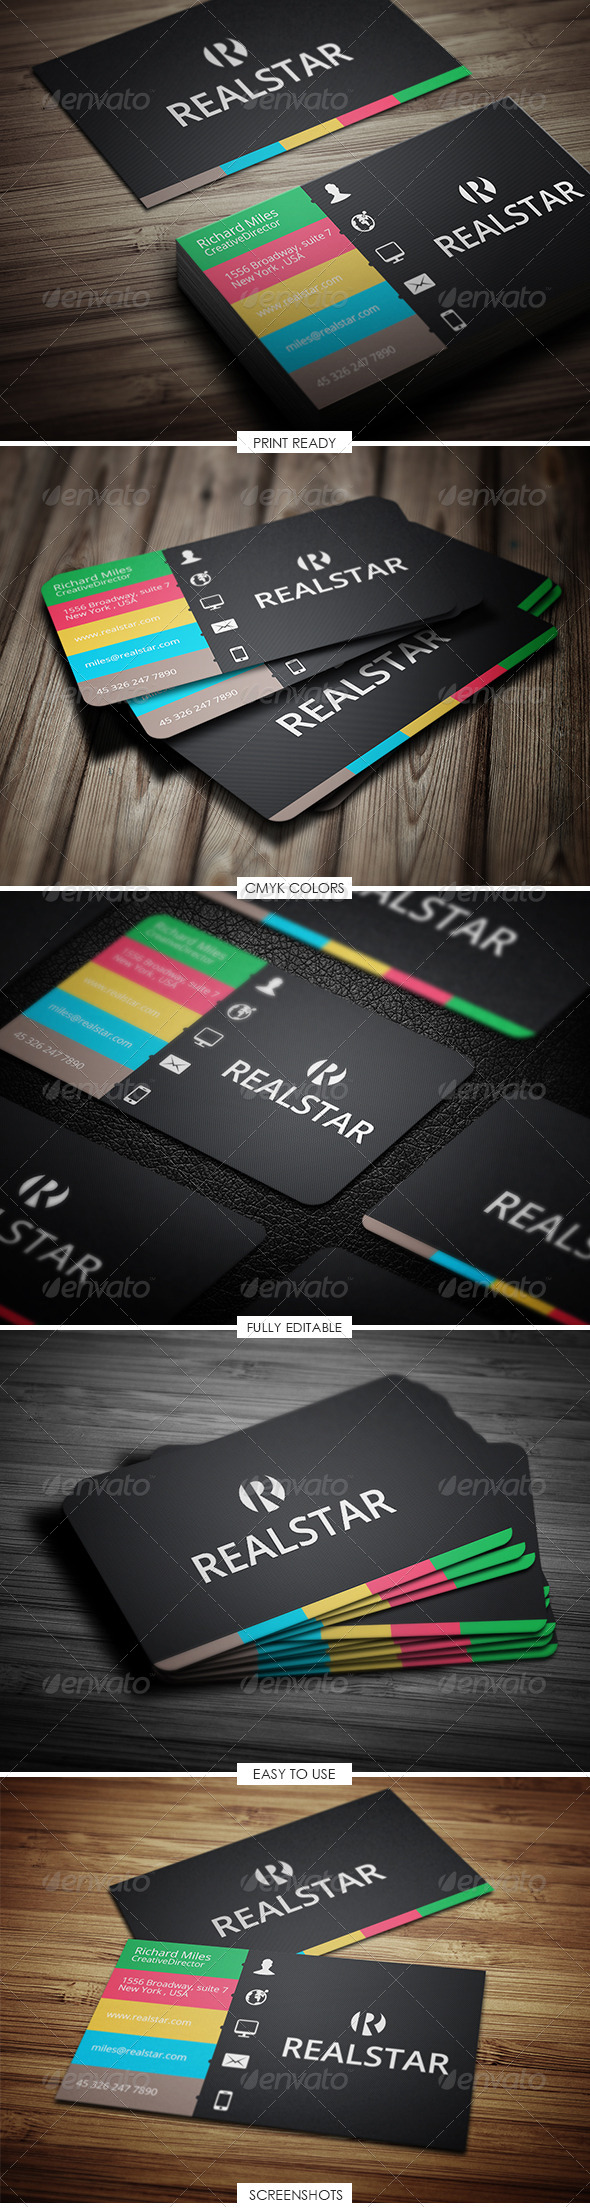 Corporate & Creative Business Card - Business Cards Print Templates